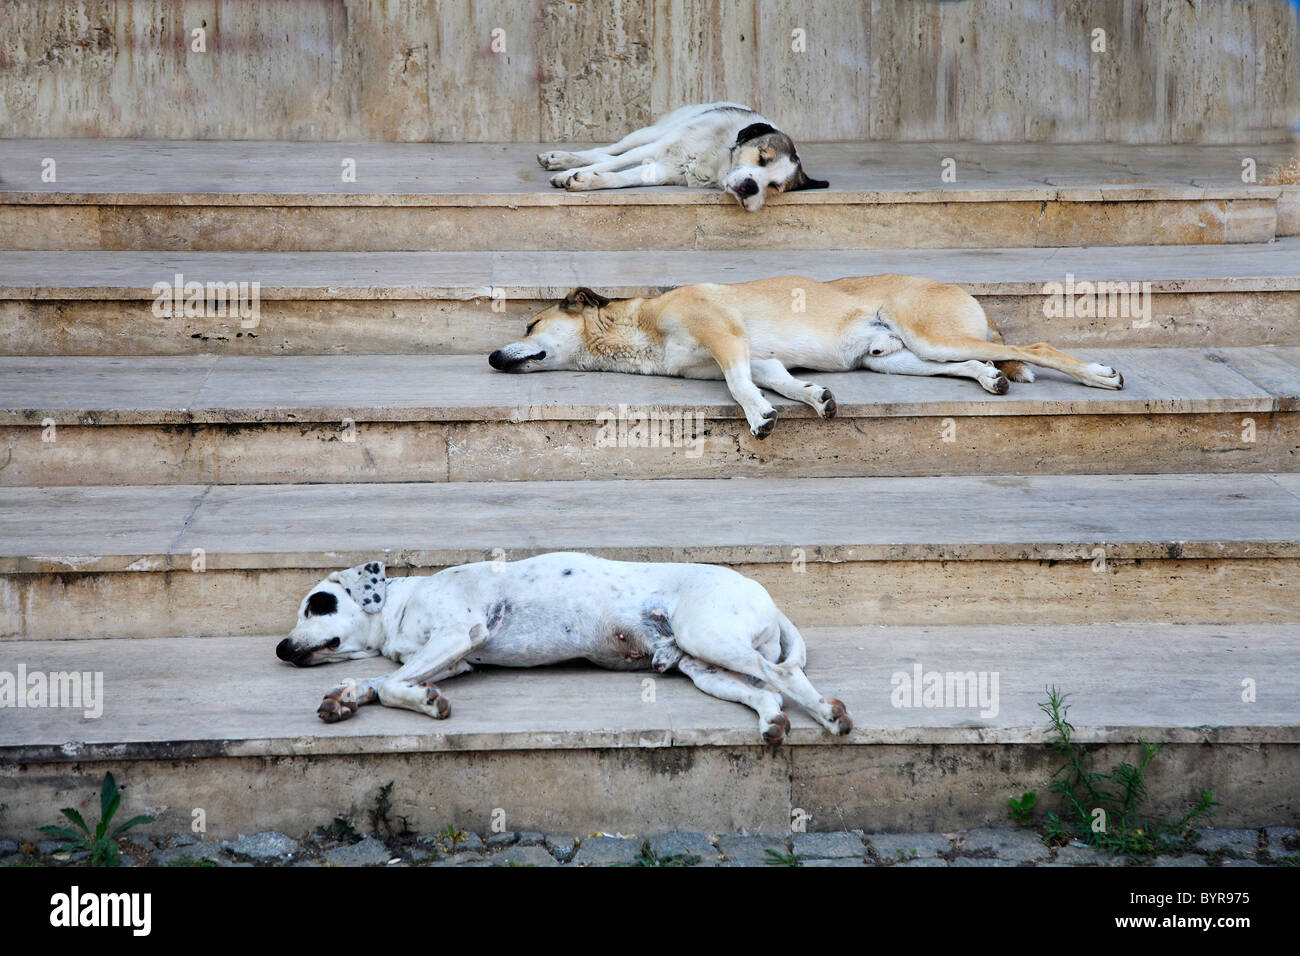 Stray dogs sleeping on the steps in the shade in Turkey - Stock Image